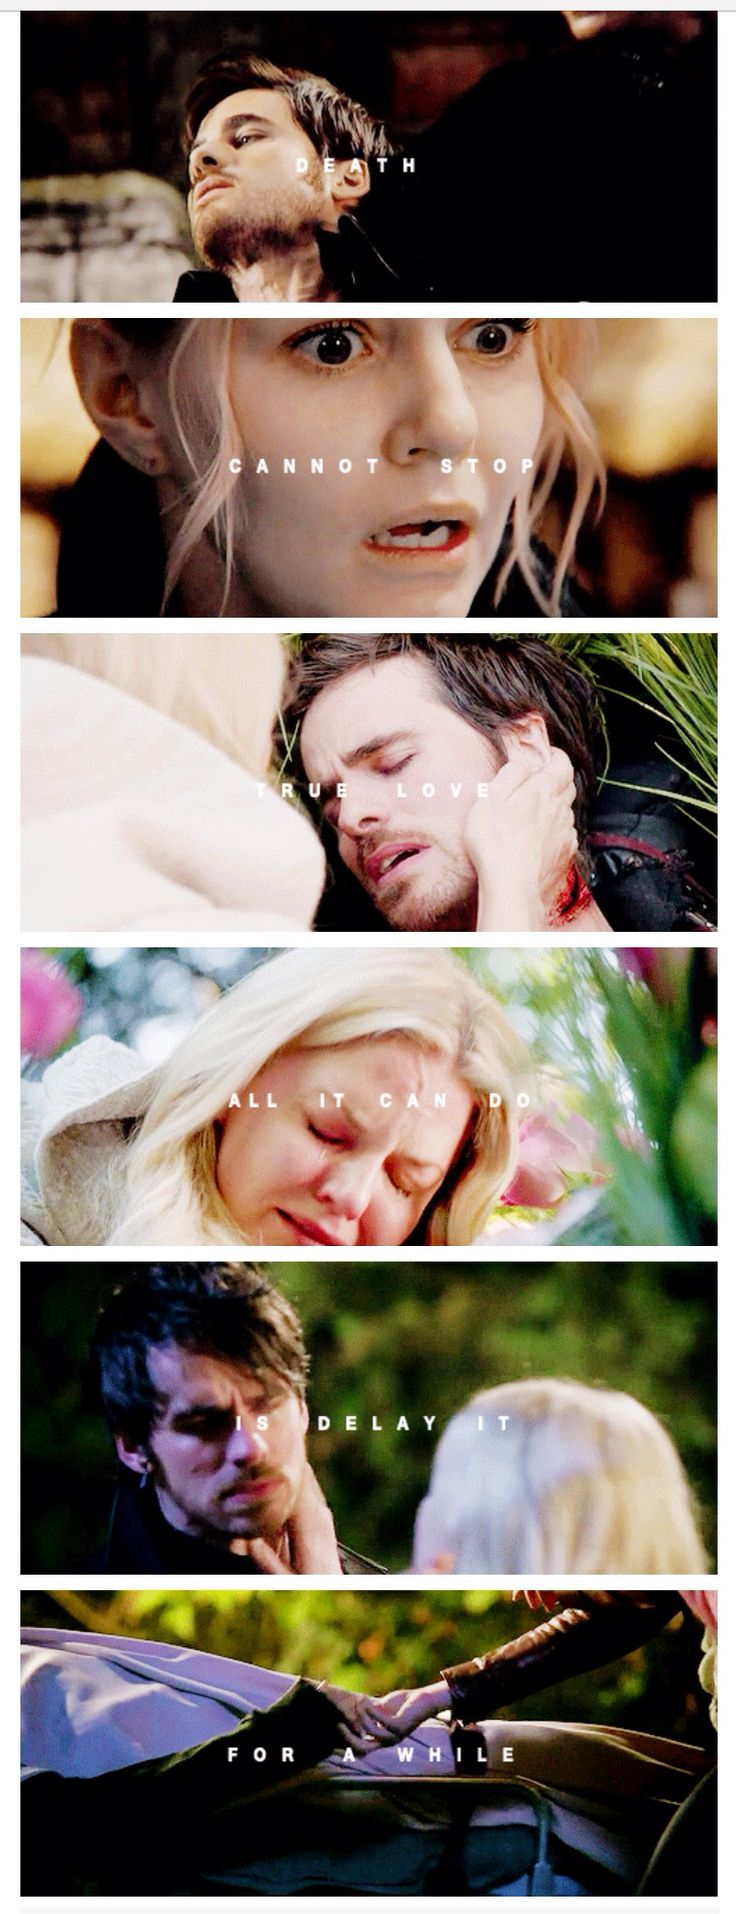 The Princess Bride. Captain Swan. Once Upon A Time.